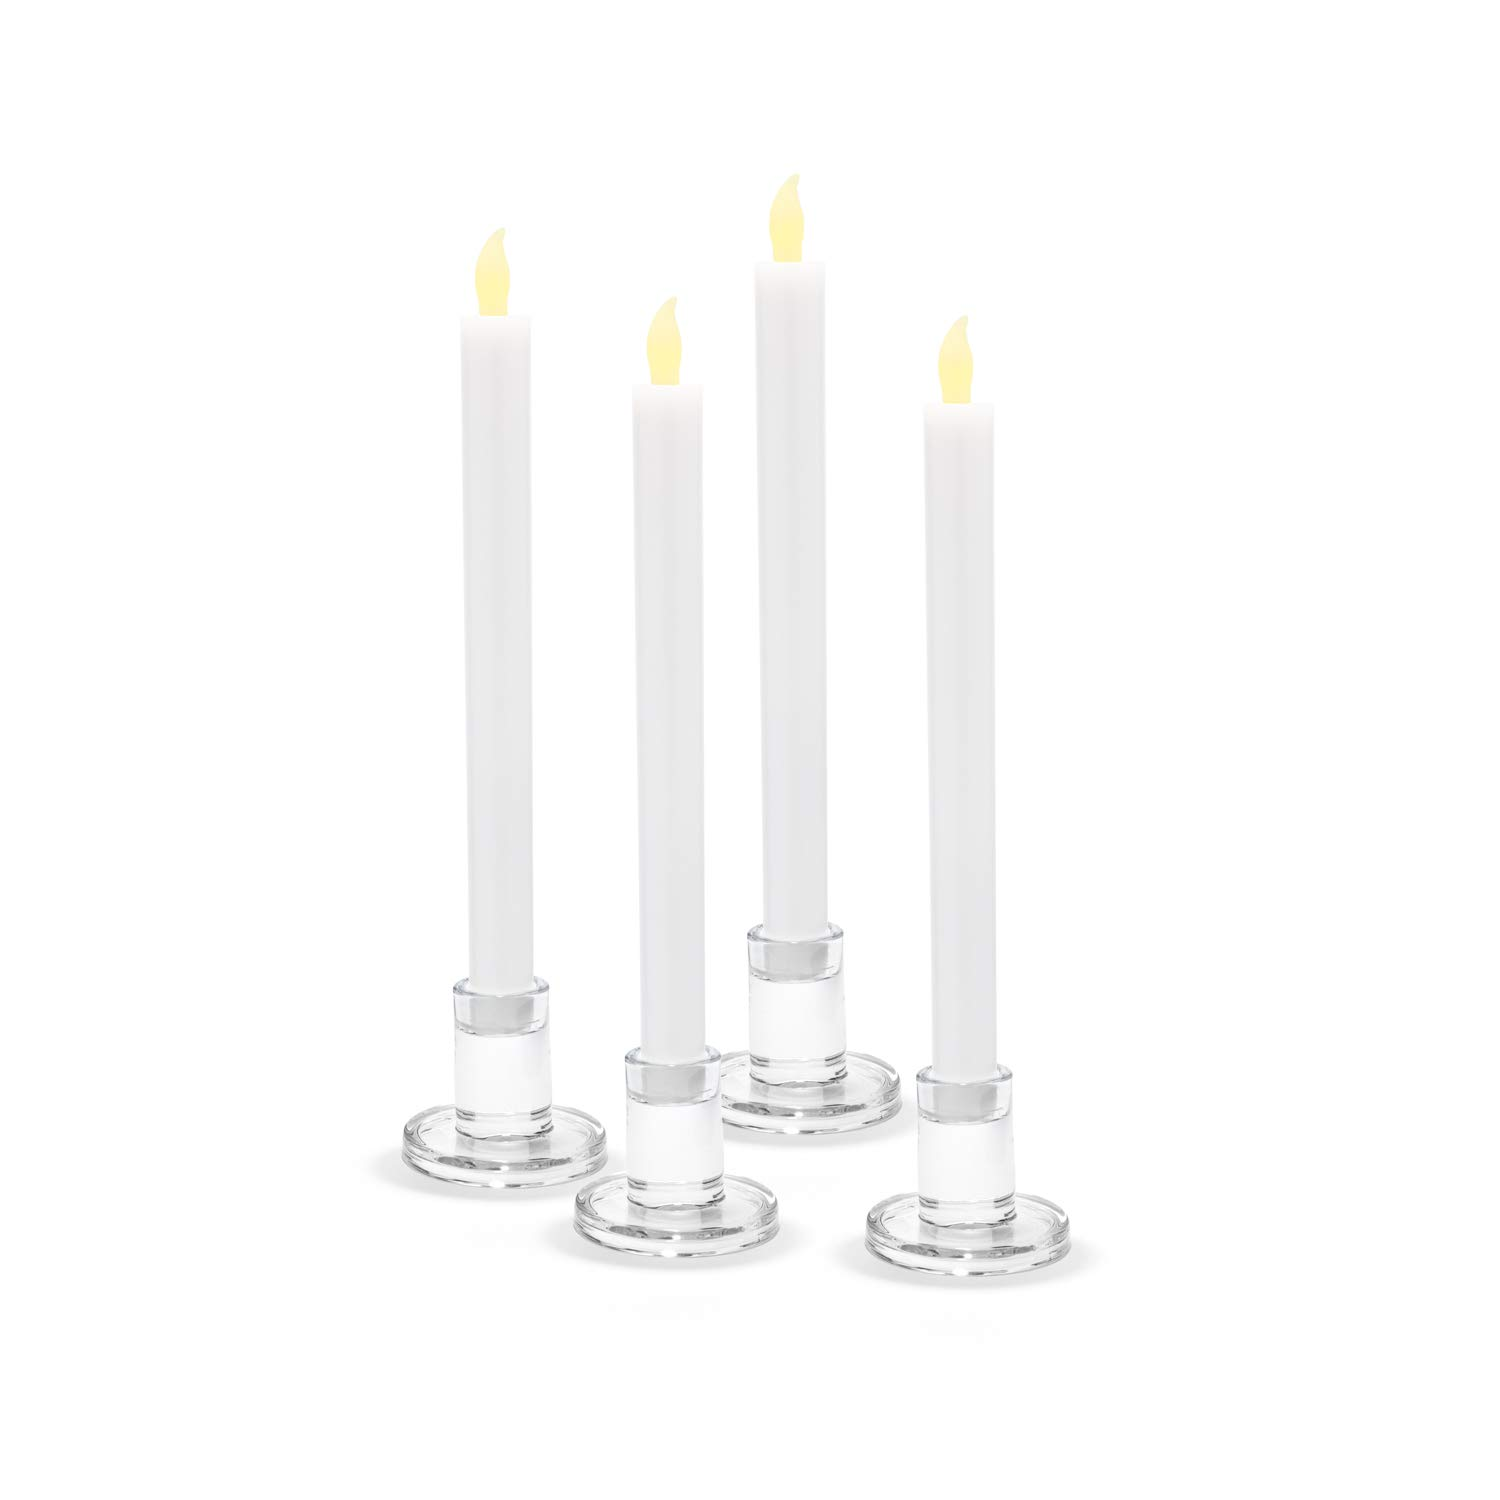 LampLust Clear Glass Candle Holders, Set of 4 - Round, 2.5'' Height, Fits All Standard Size Taper Candlesticks